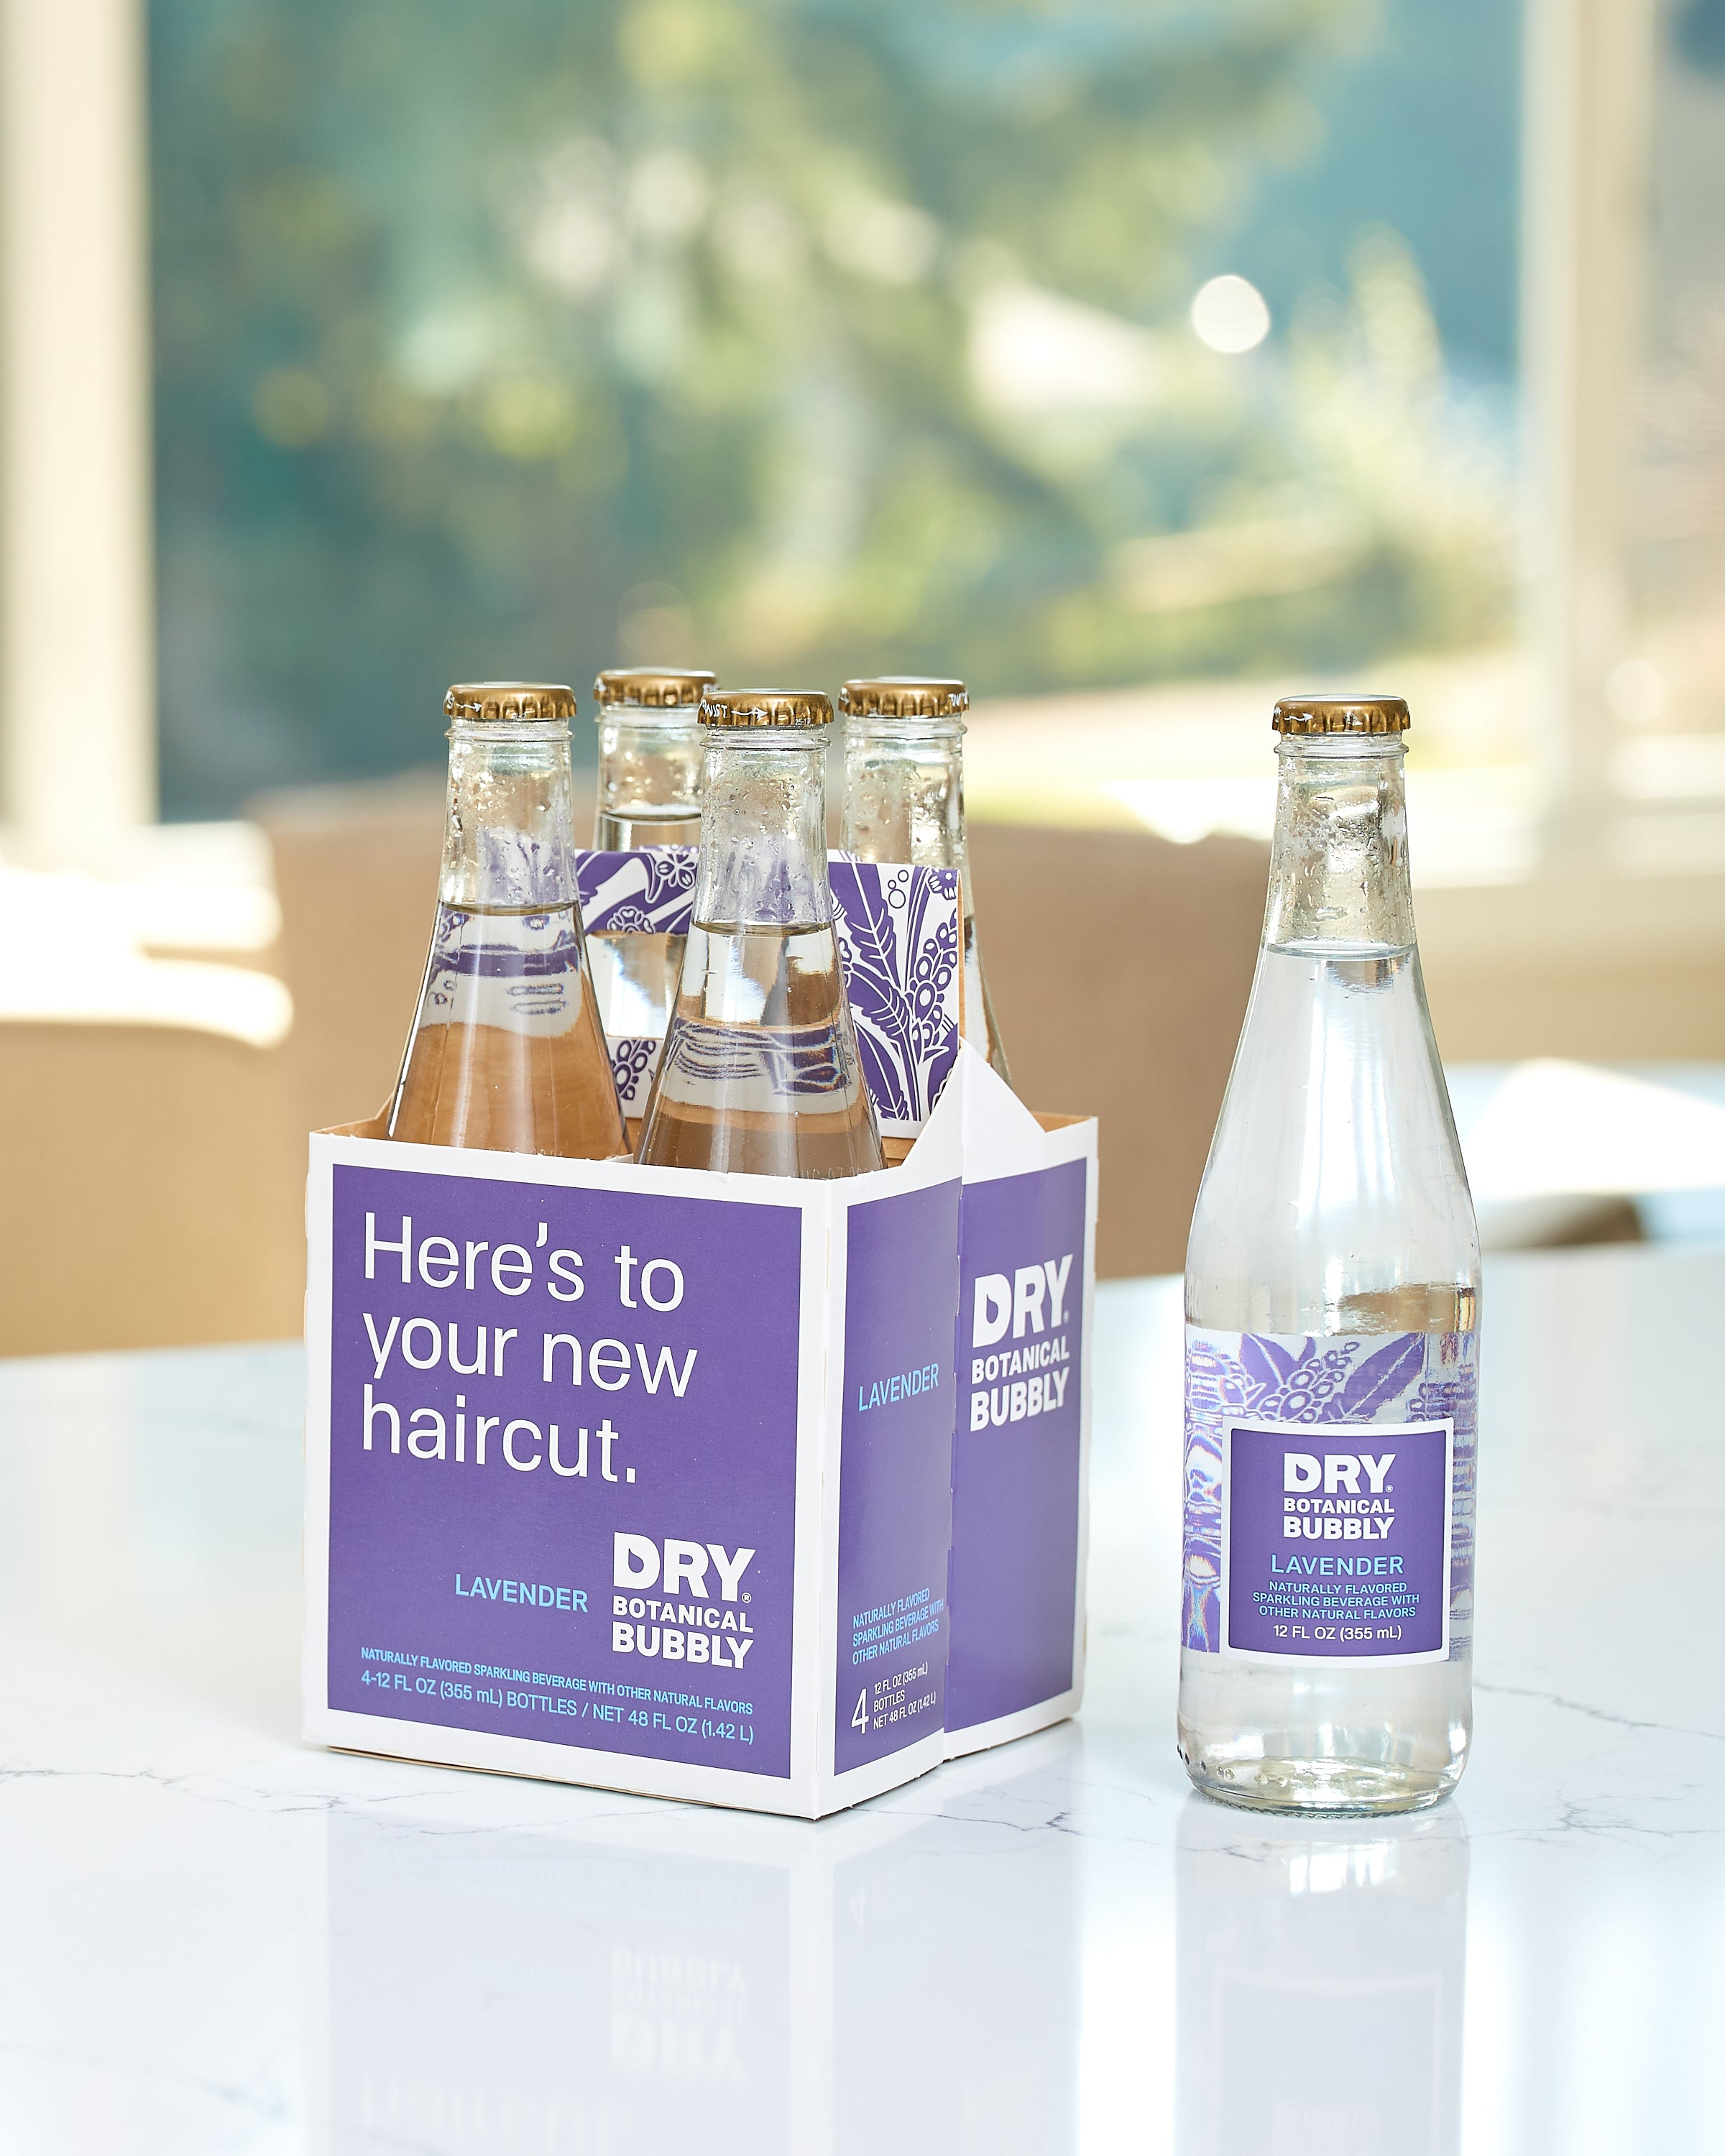 DRY Lavender Botanical Bubbly (12 Pack)